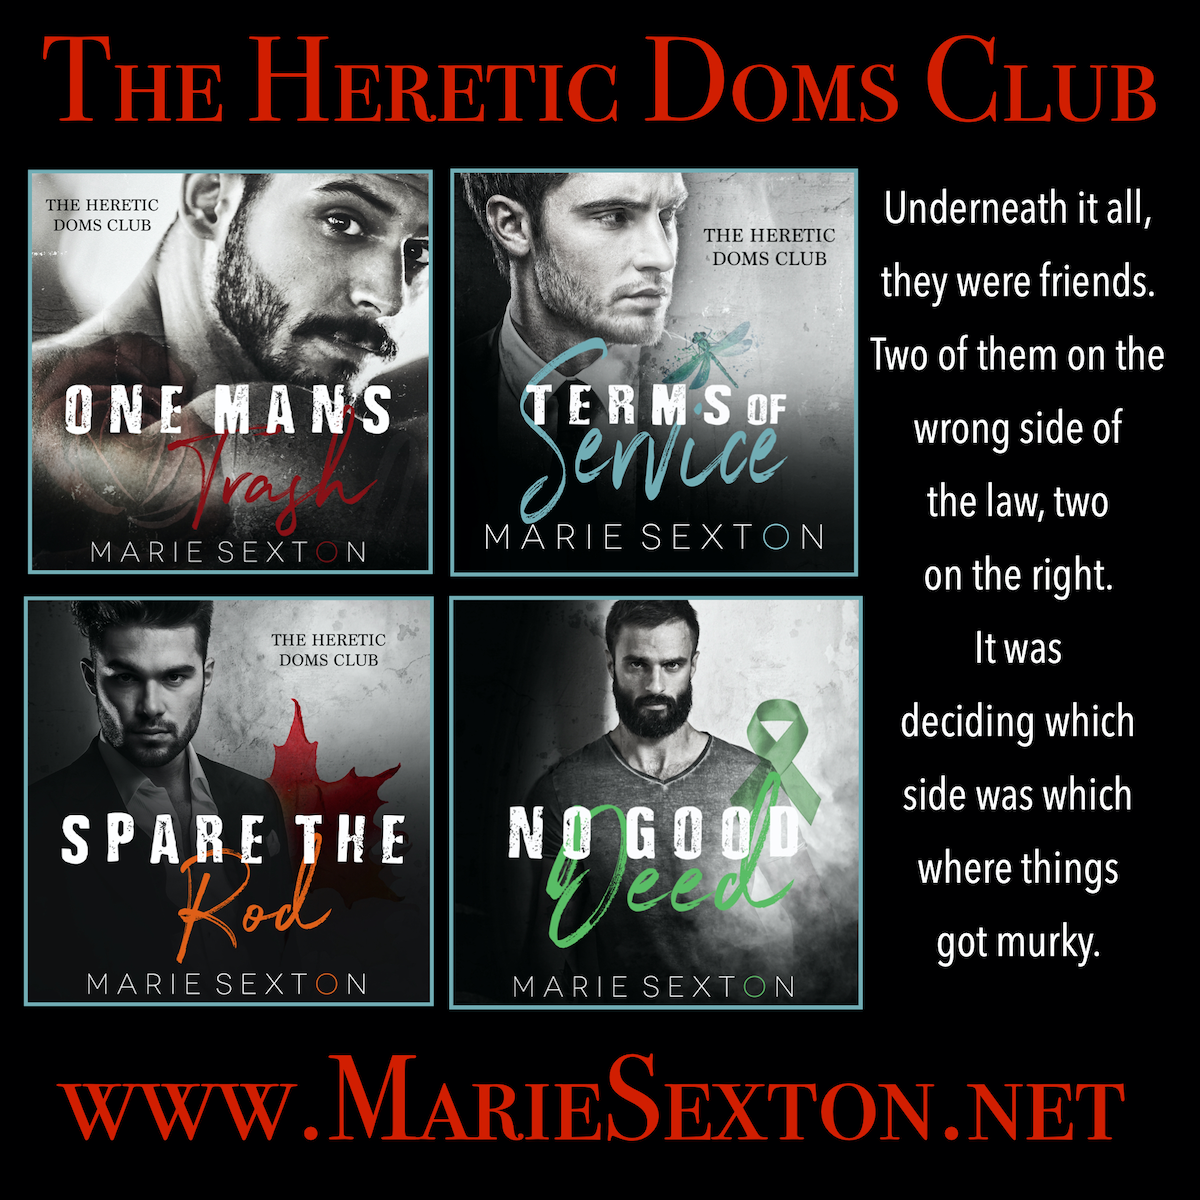 The Heretic Doms Club